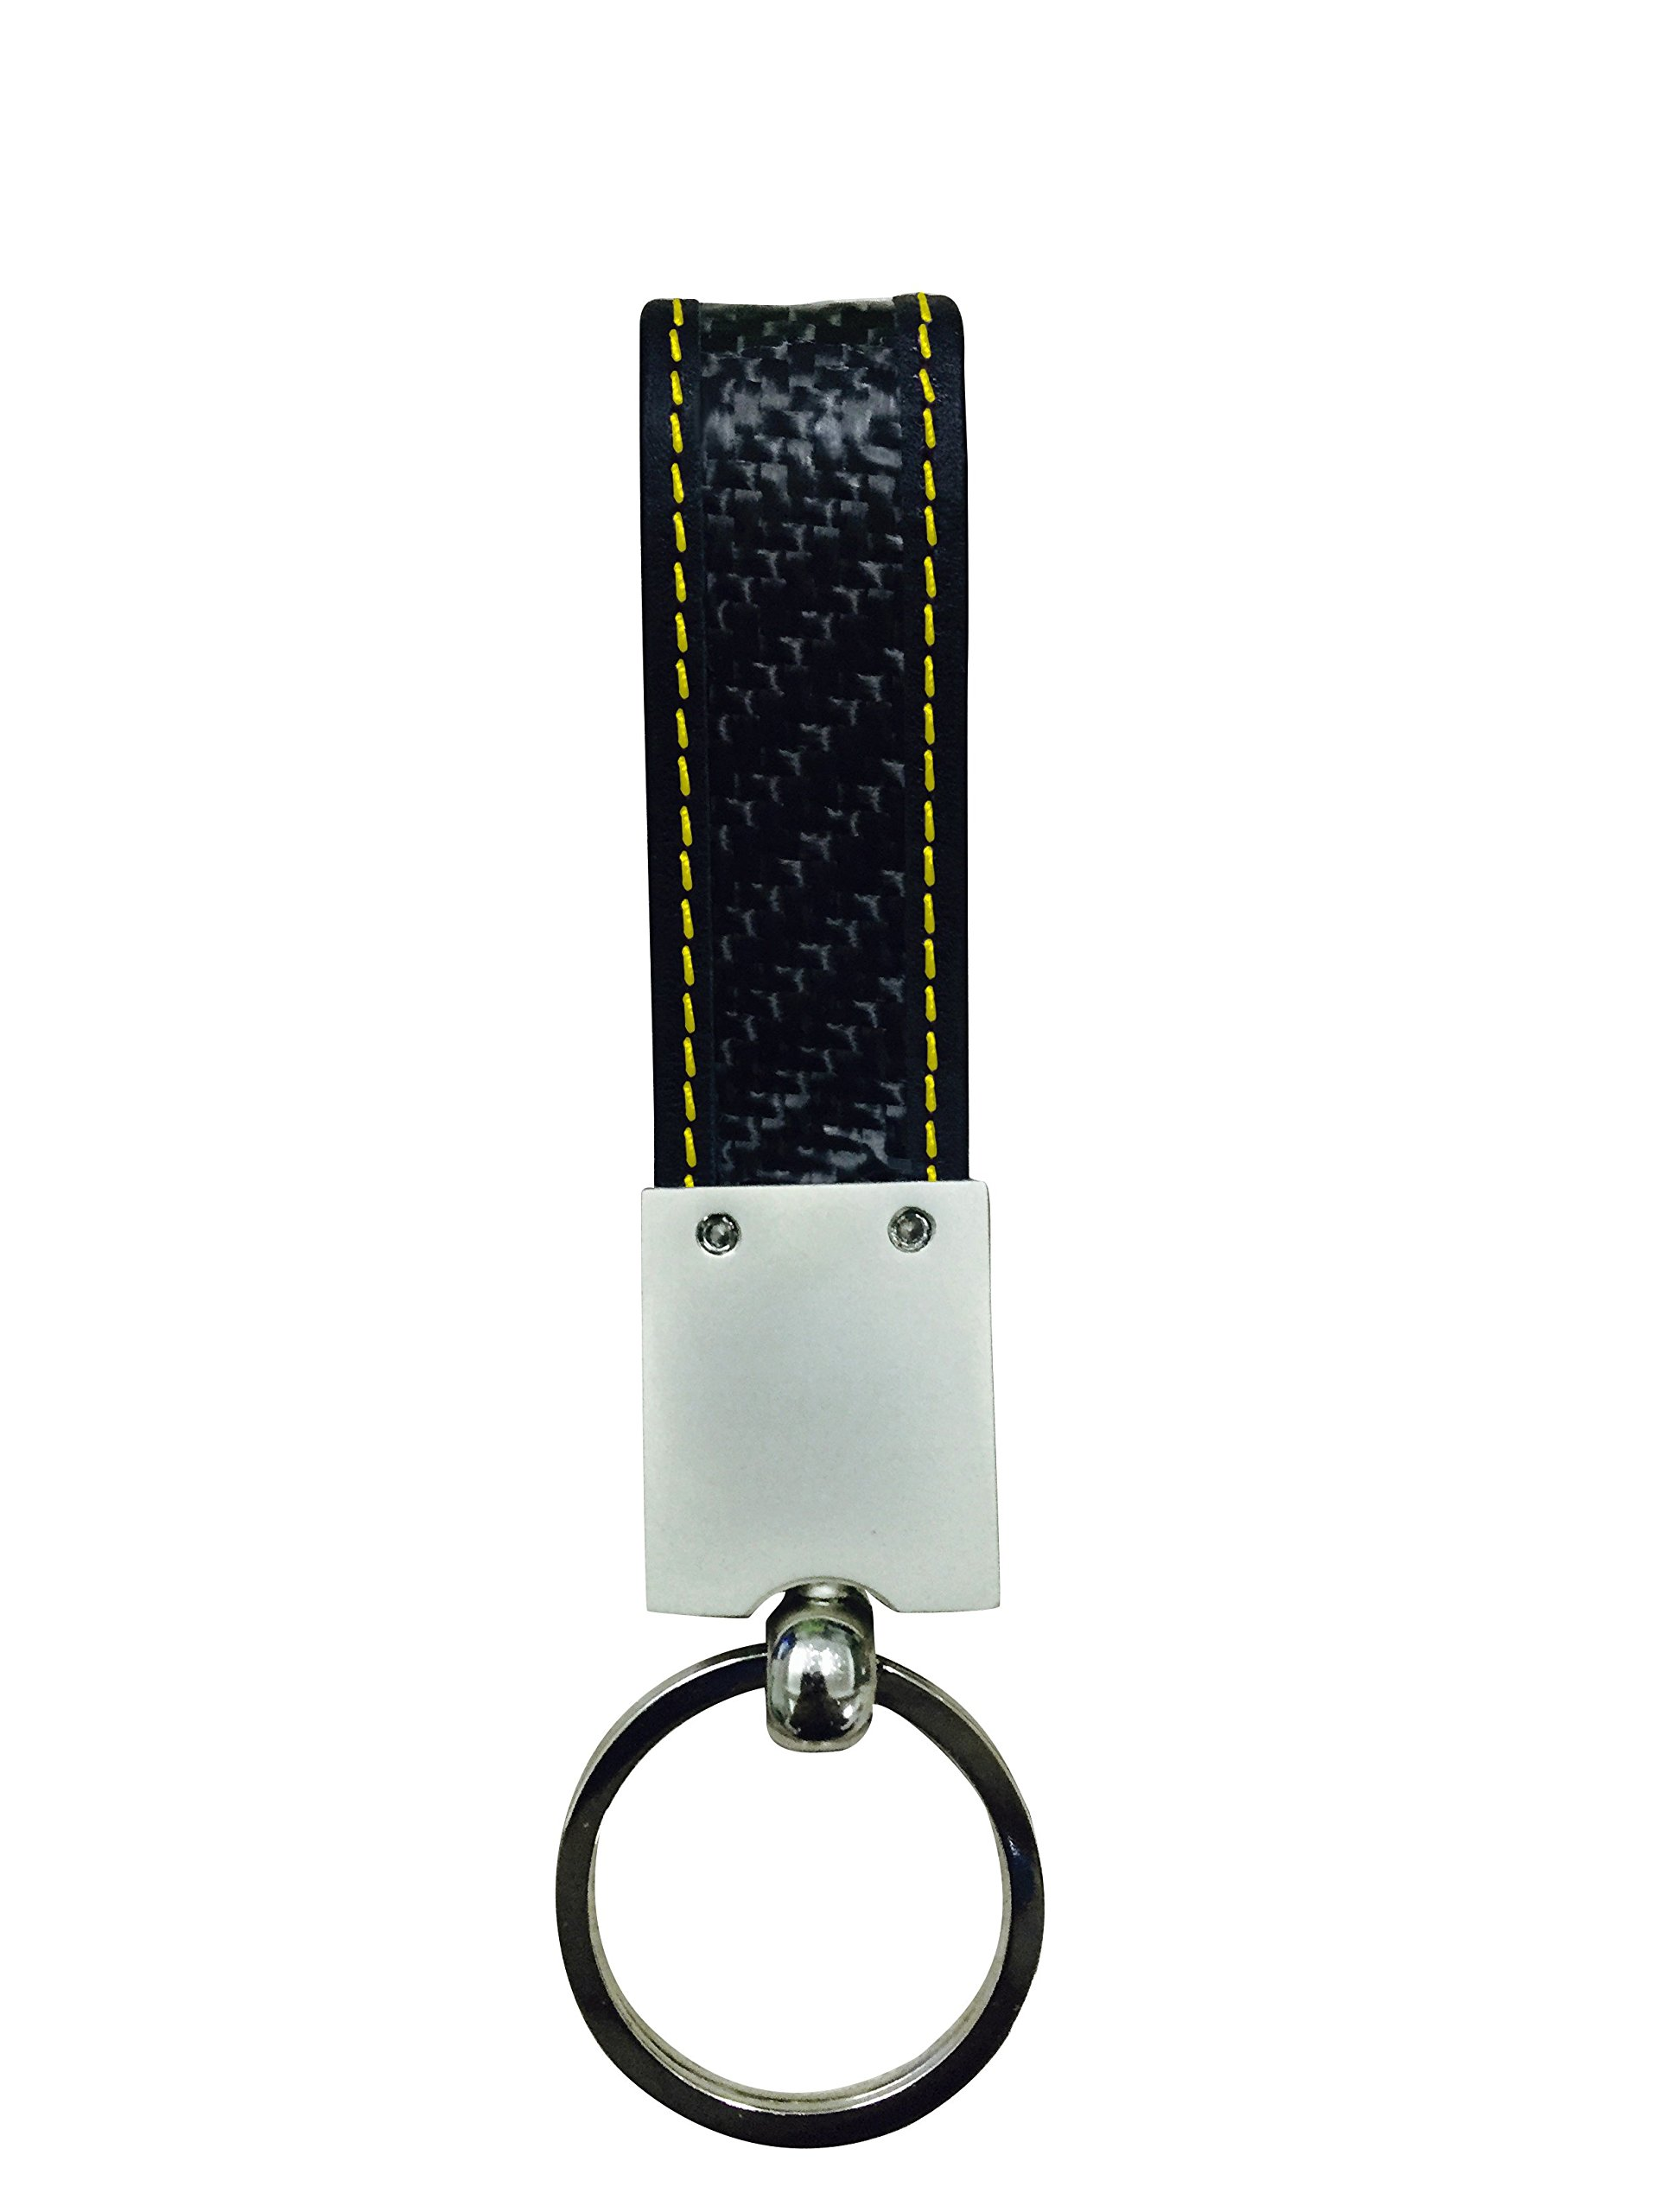 Real Carbon Fiber Keychain Elegant, MGCFTan Timeless Key chain Yellow